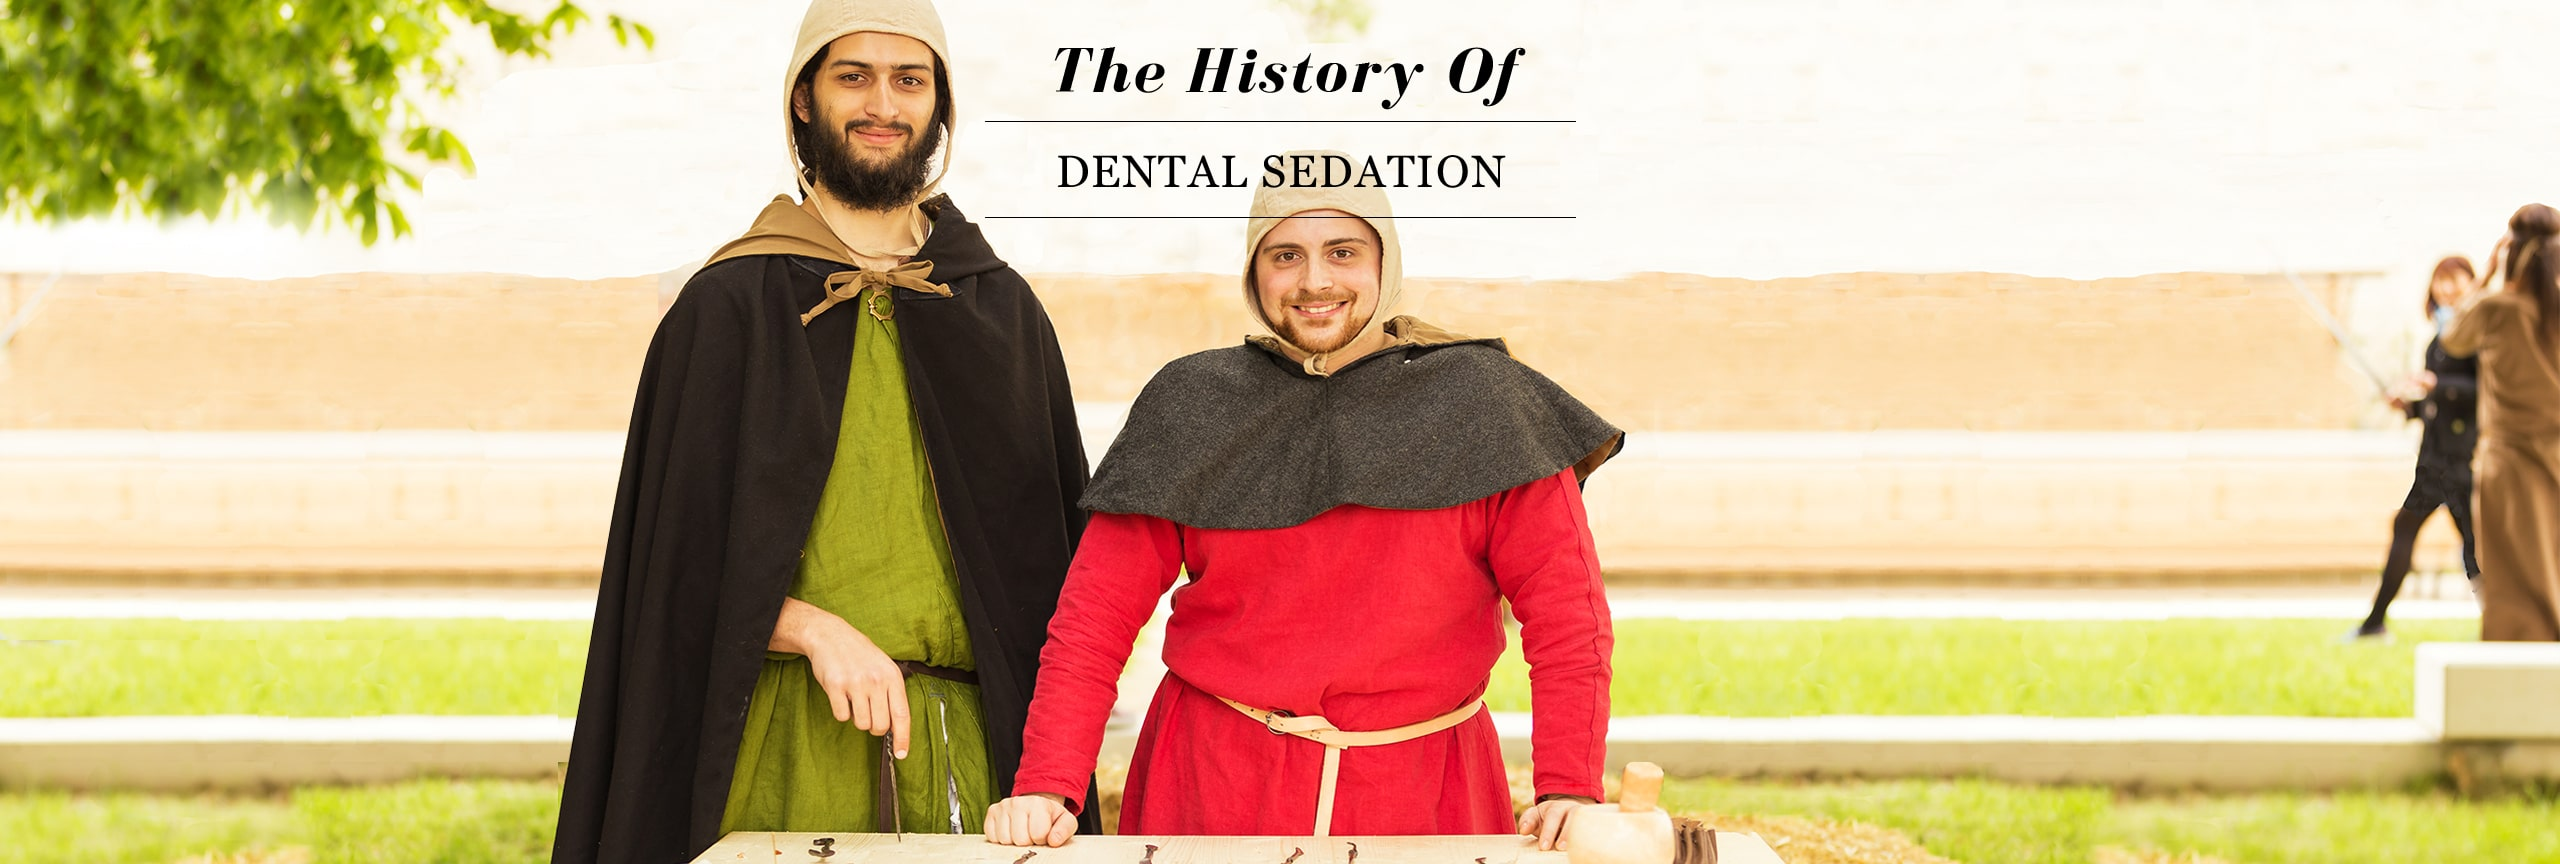 A Brief History of Dental Sedation